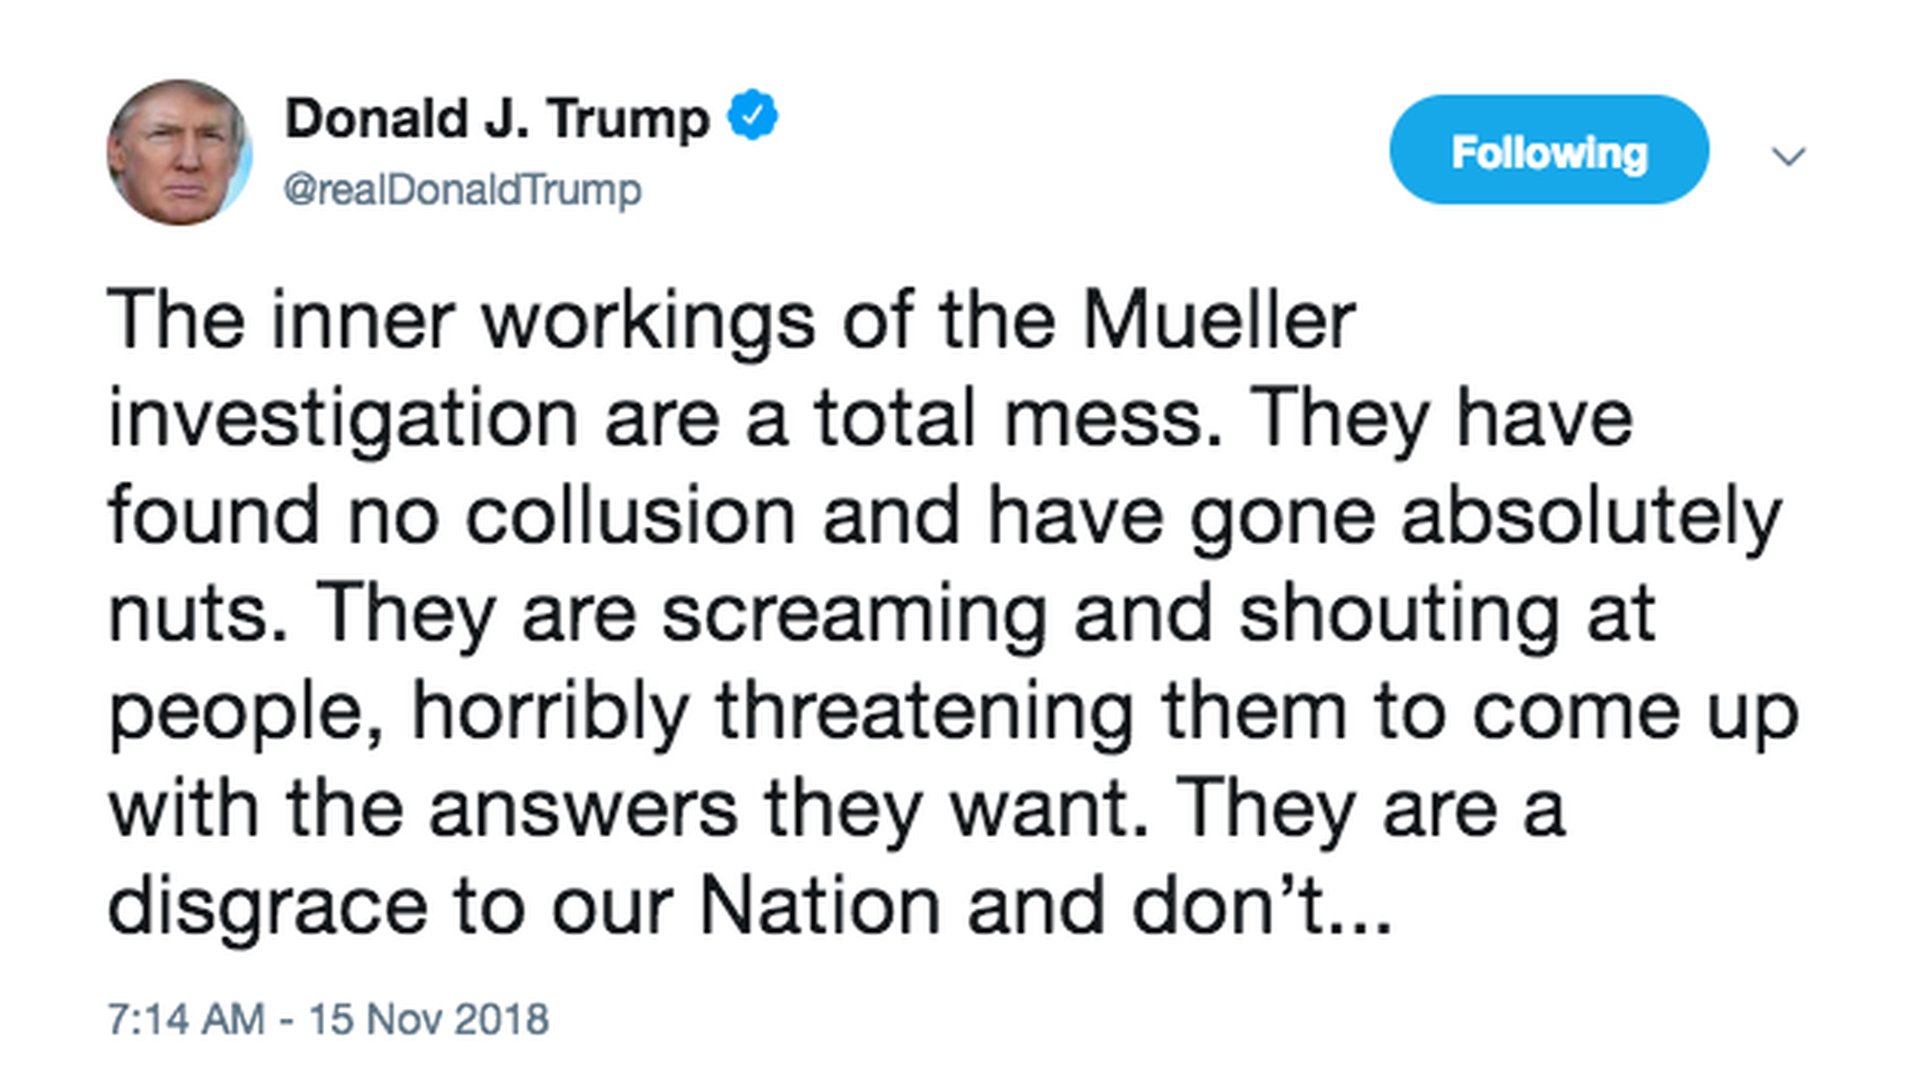 Trump renews attacks on Mueller investigation after midterms